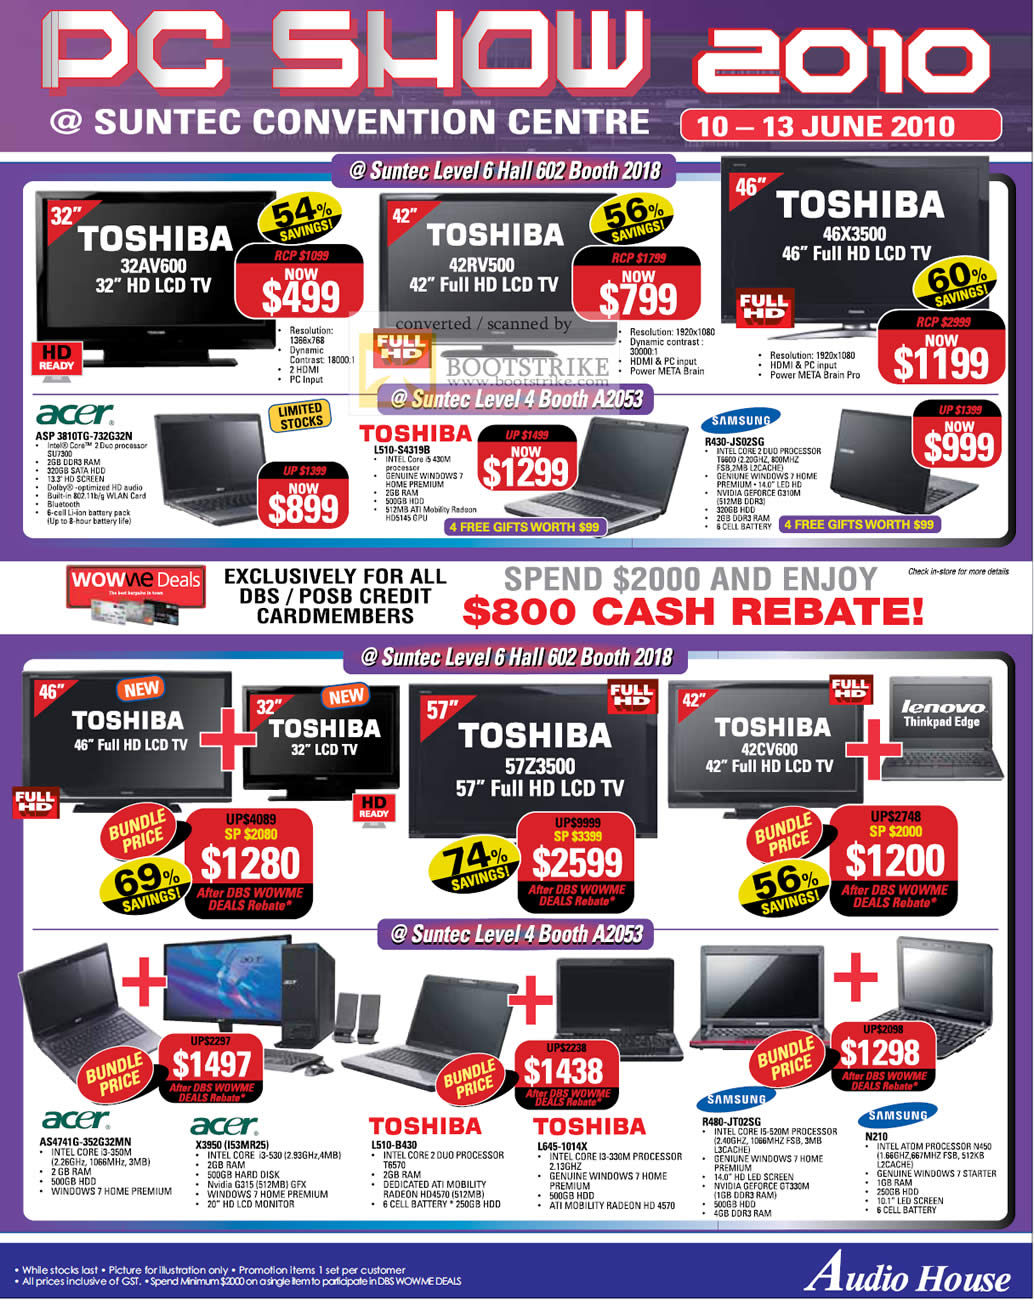 PC Show 2010 price list image brochure of Audio House Toshiba LCD TV Acer Notebooks Samsung N210 R480 L645 L510 X3950 AS4741G L510 3810TG R430